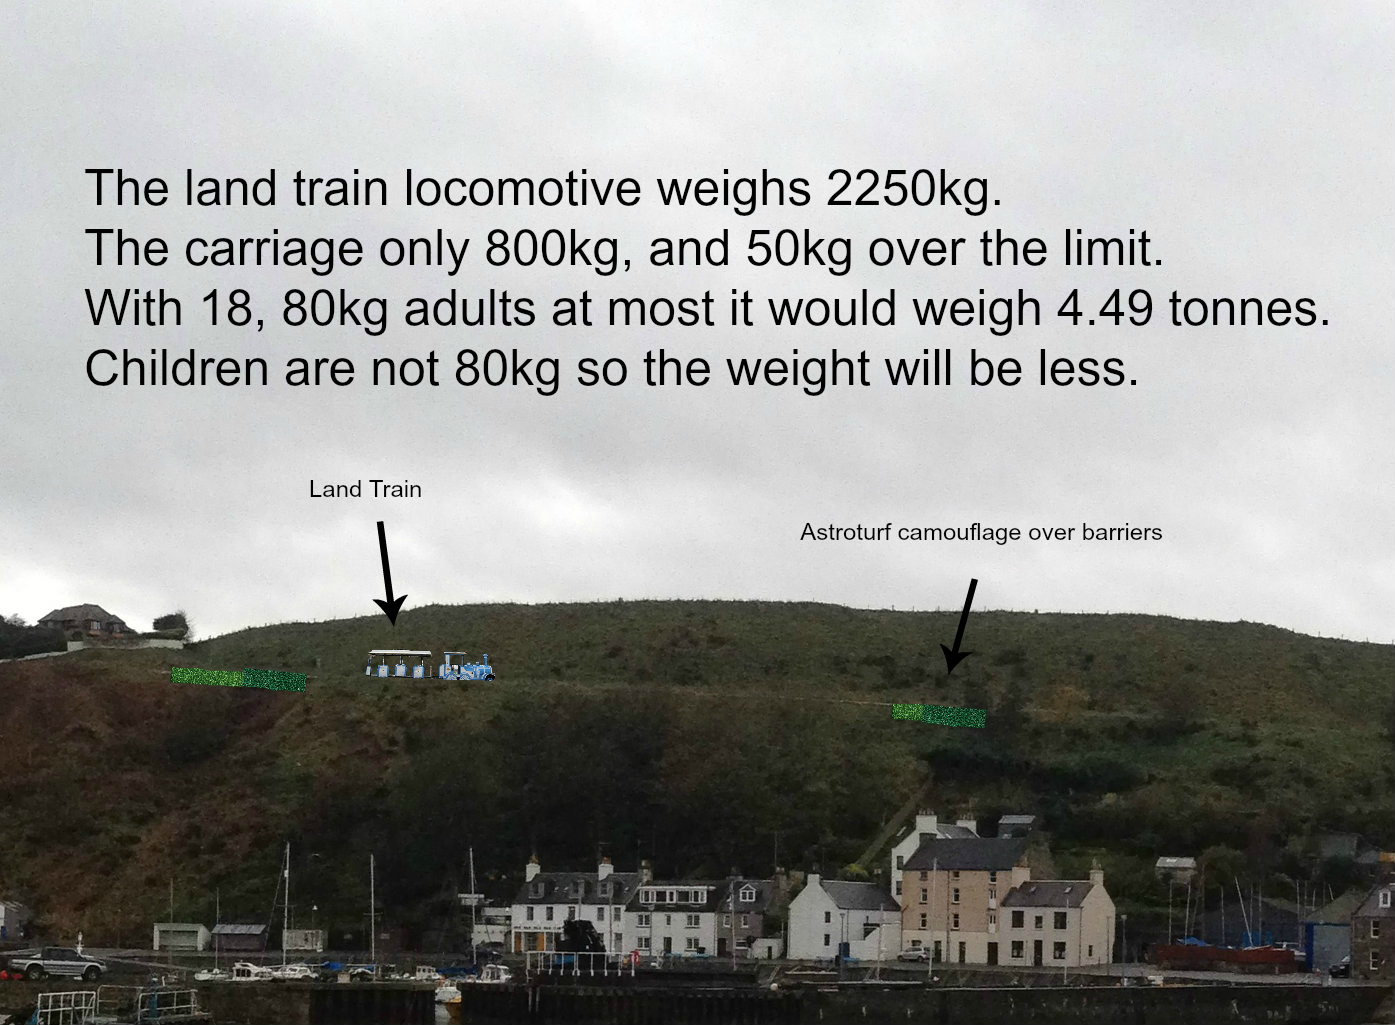 Stonehaven Town Partnership have made these calculations to argue their case for taking their tourist road train down the Bervie Braes